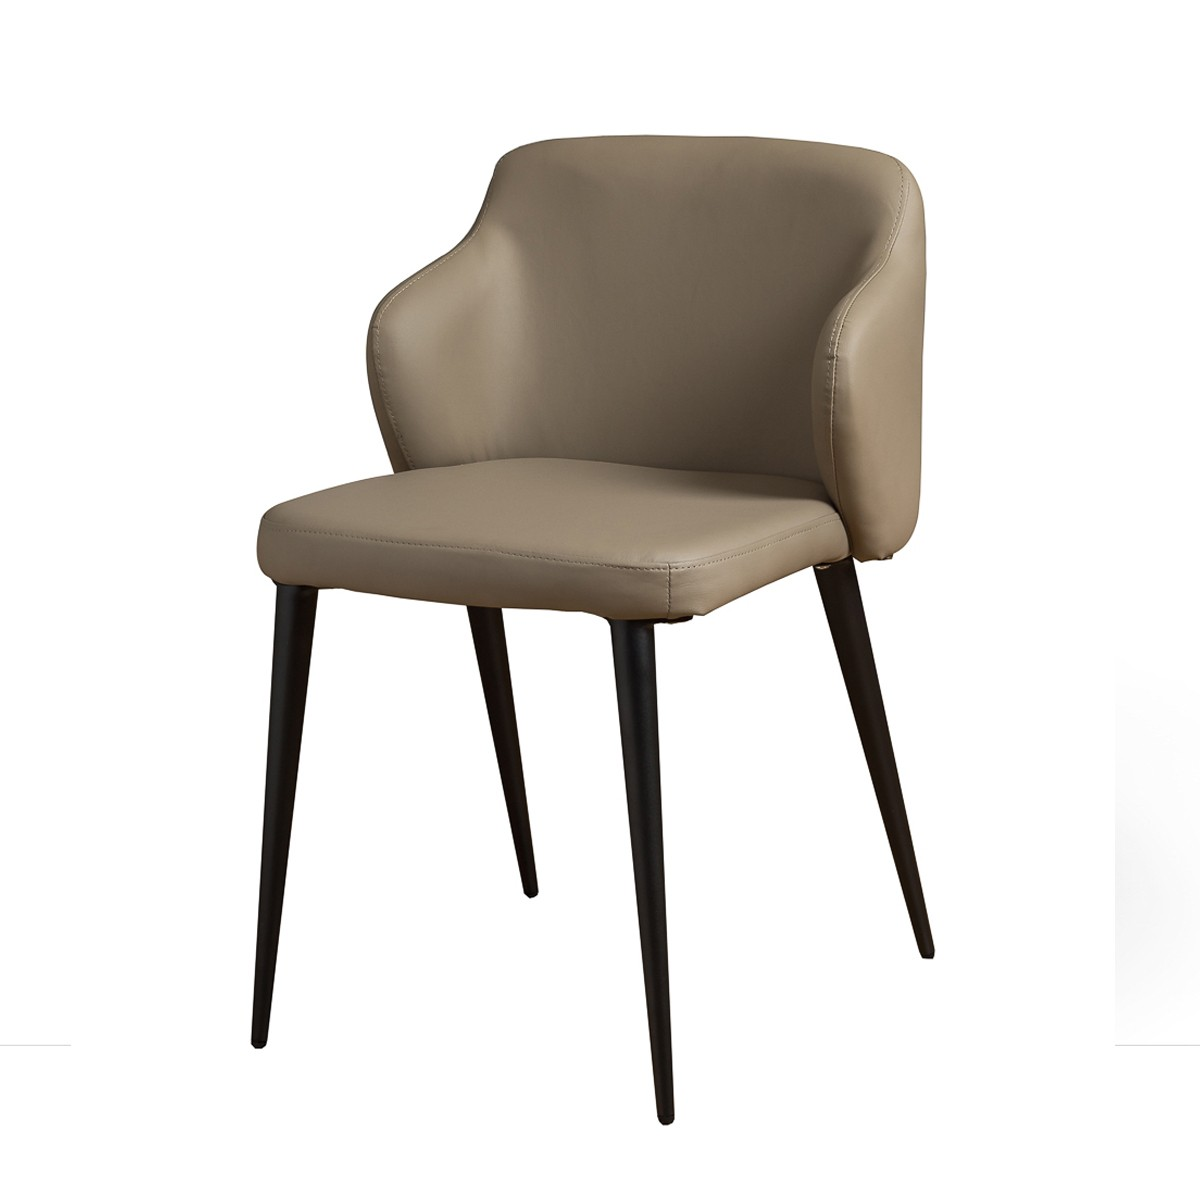 Taupe Dining Chairs Taupe Designer Dining Chair With Powder Coated Metal Legs